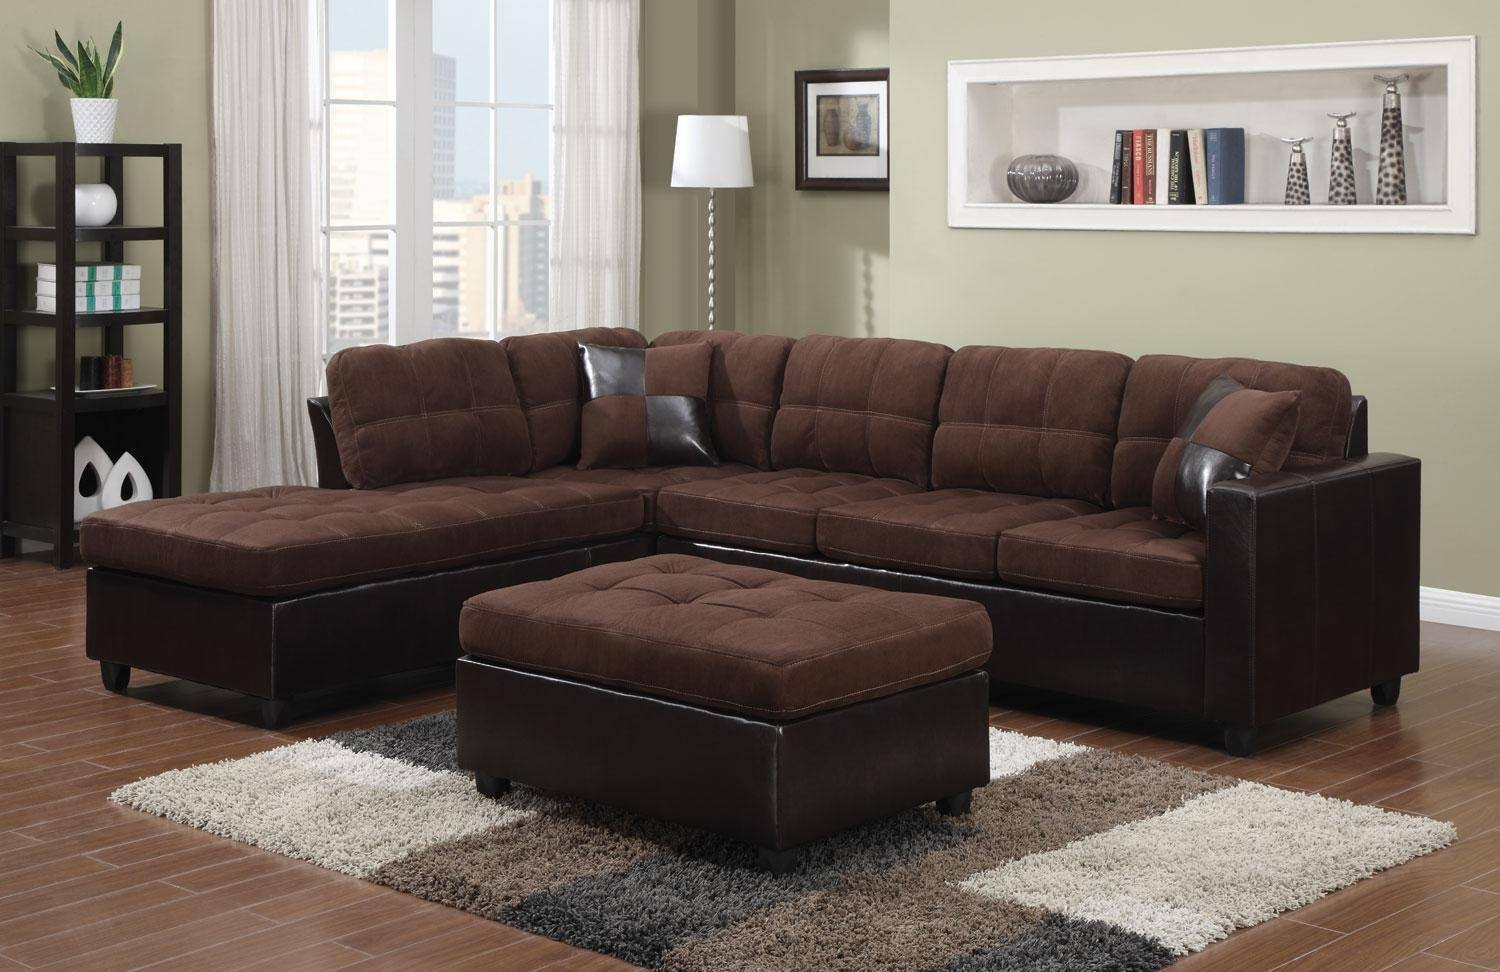 Living Room: Captivating Coaster Sectional Design For Your Lovely in Chenille and Leather Sectional Sofa (Image 13 of 30)